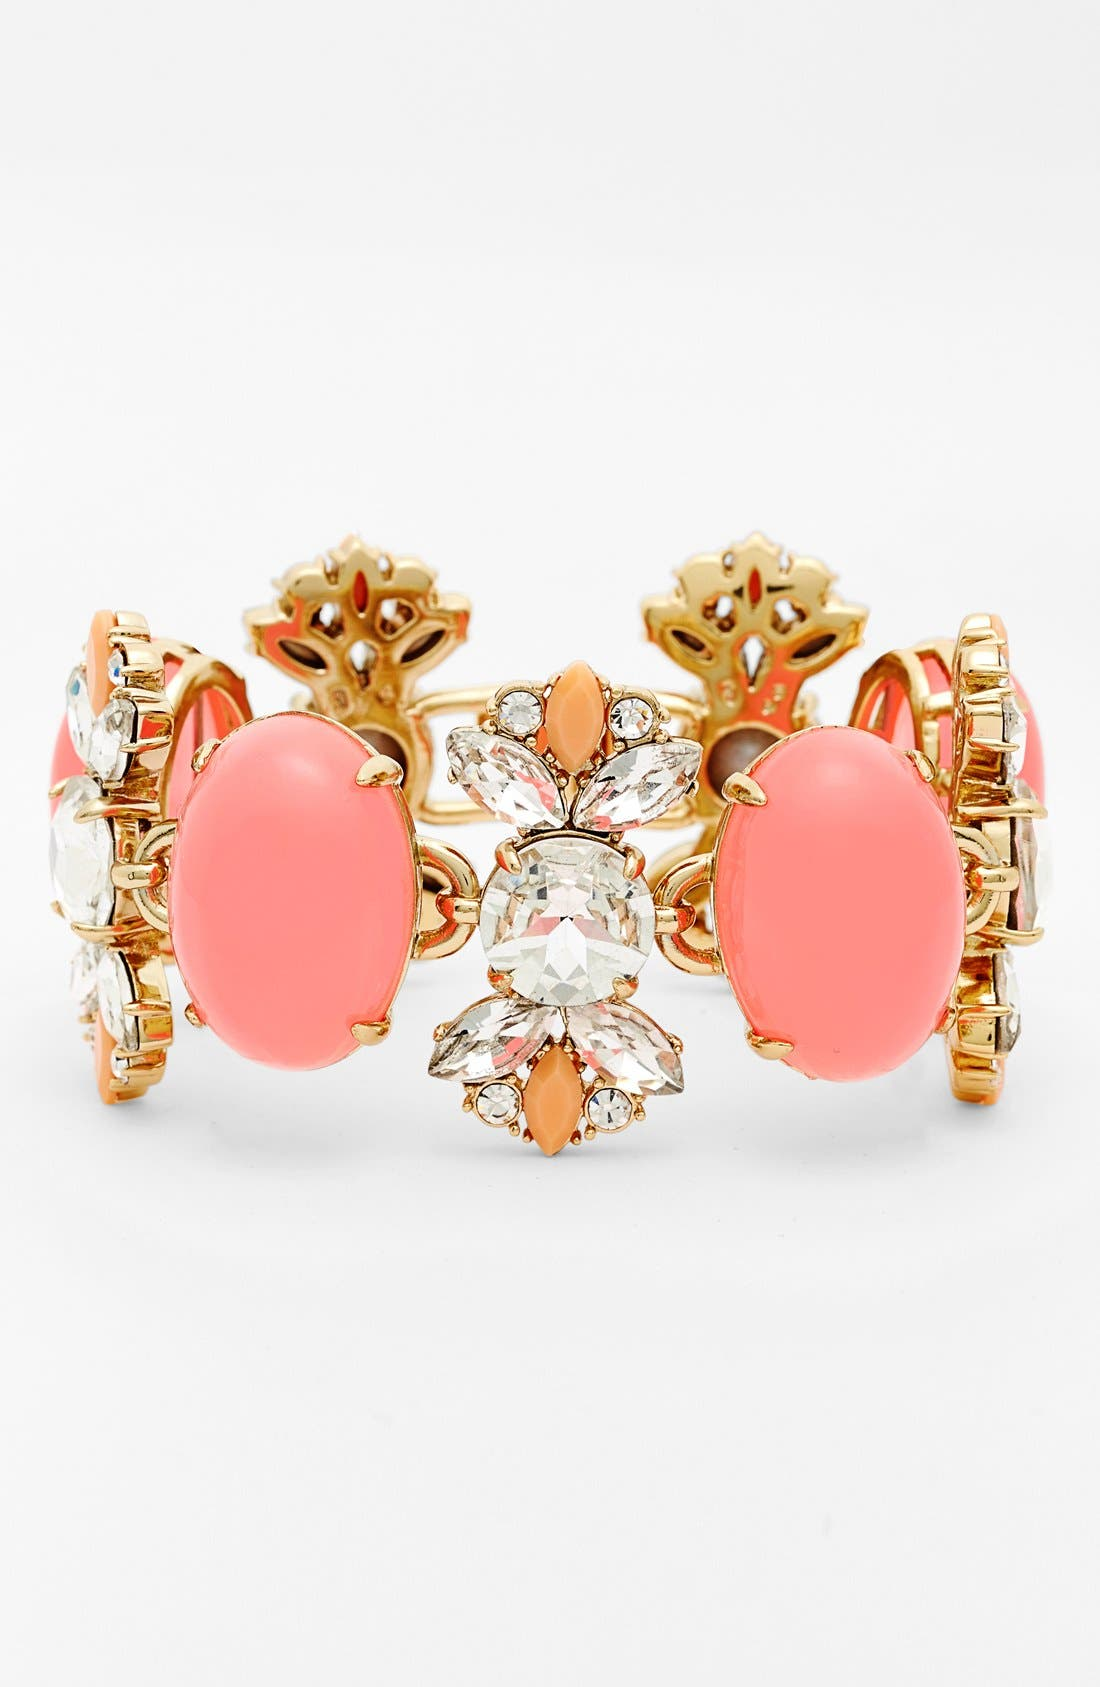 Main Image - Juicy Couture 'Haute Hue' Cluster Bracelet